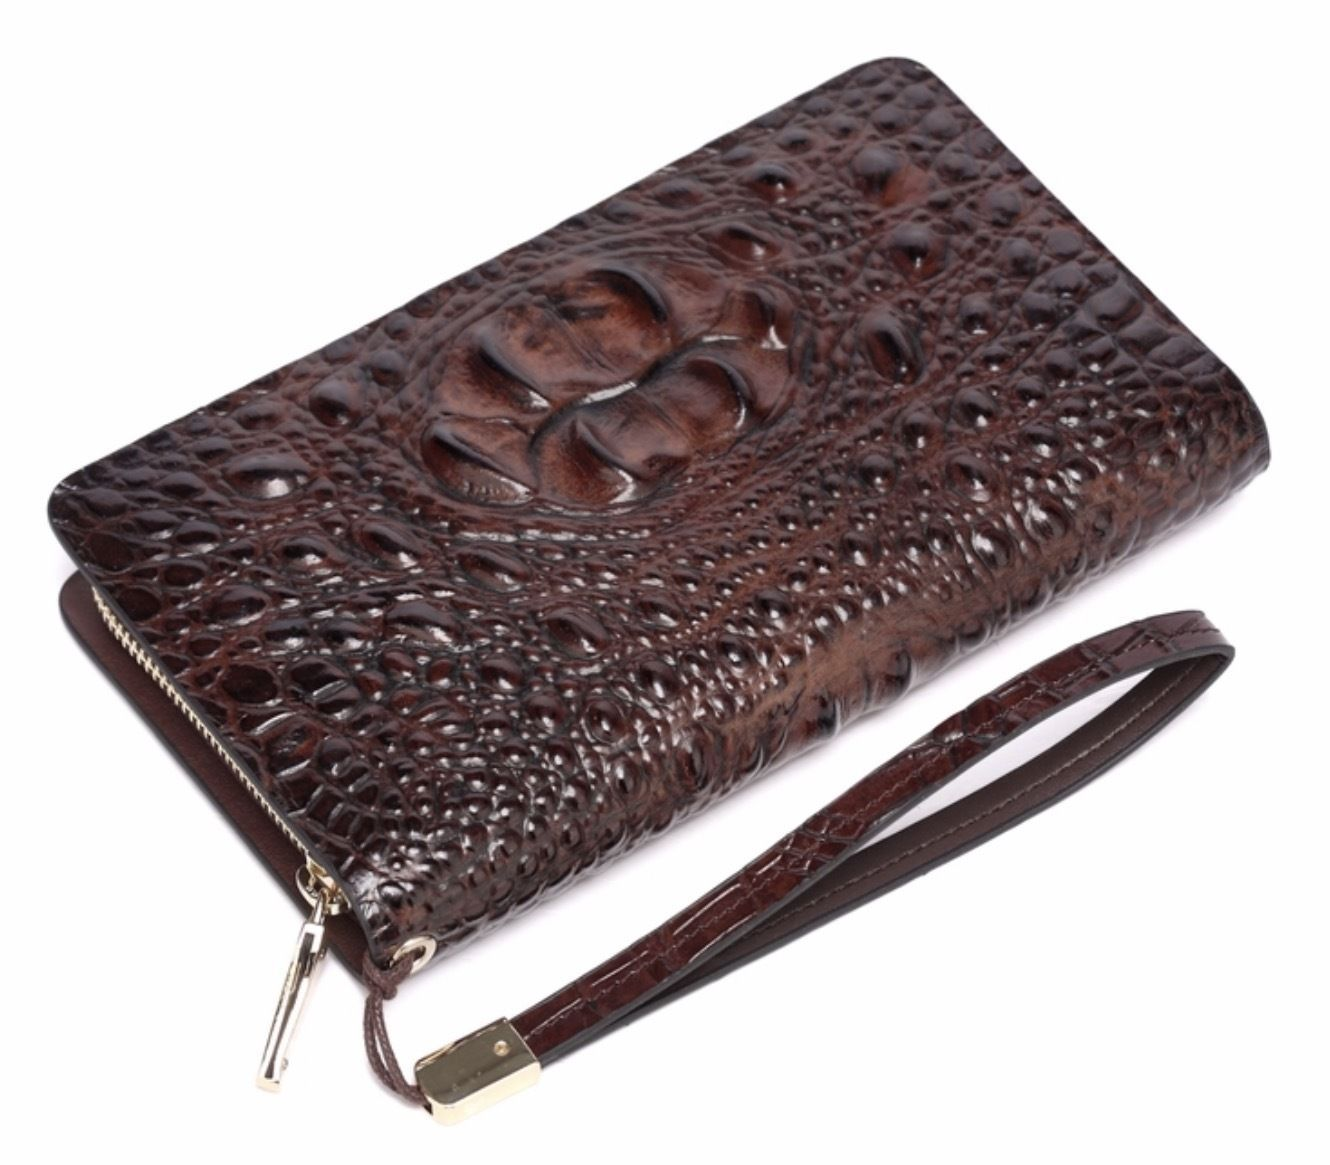 New Crocodile Embossed Italian Leather Clutch Wristlet Wallet Coffee Brown